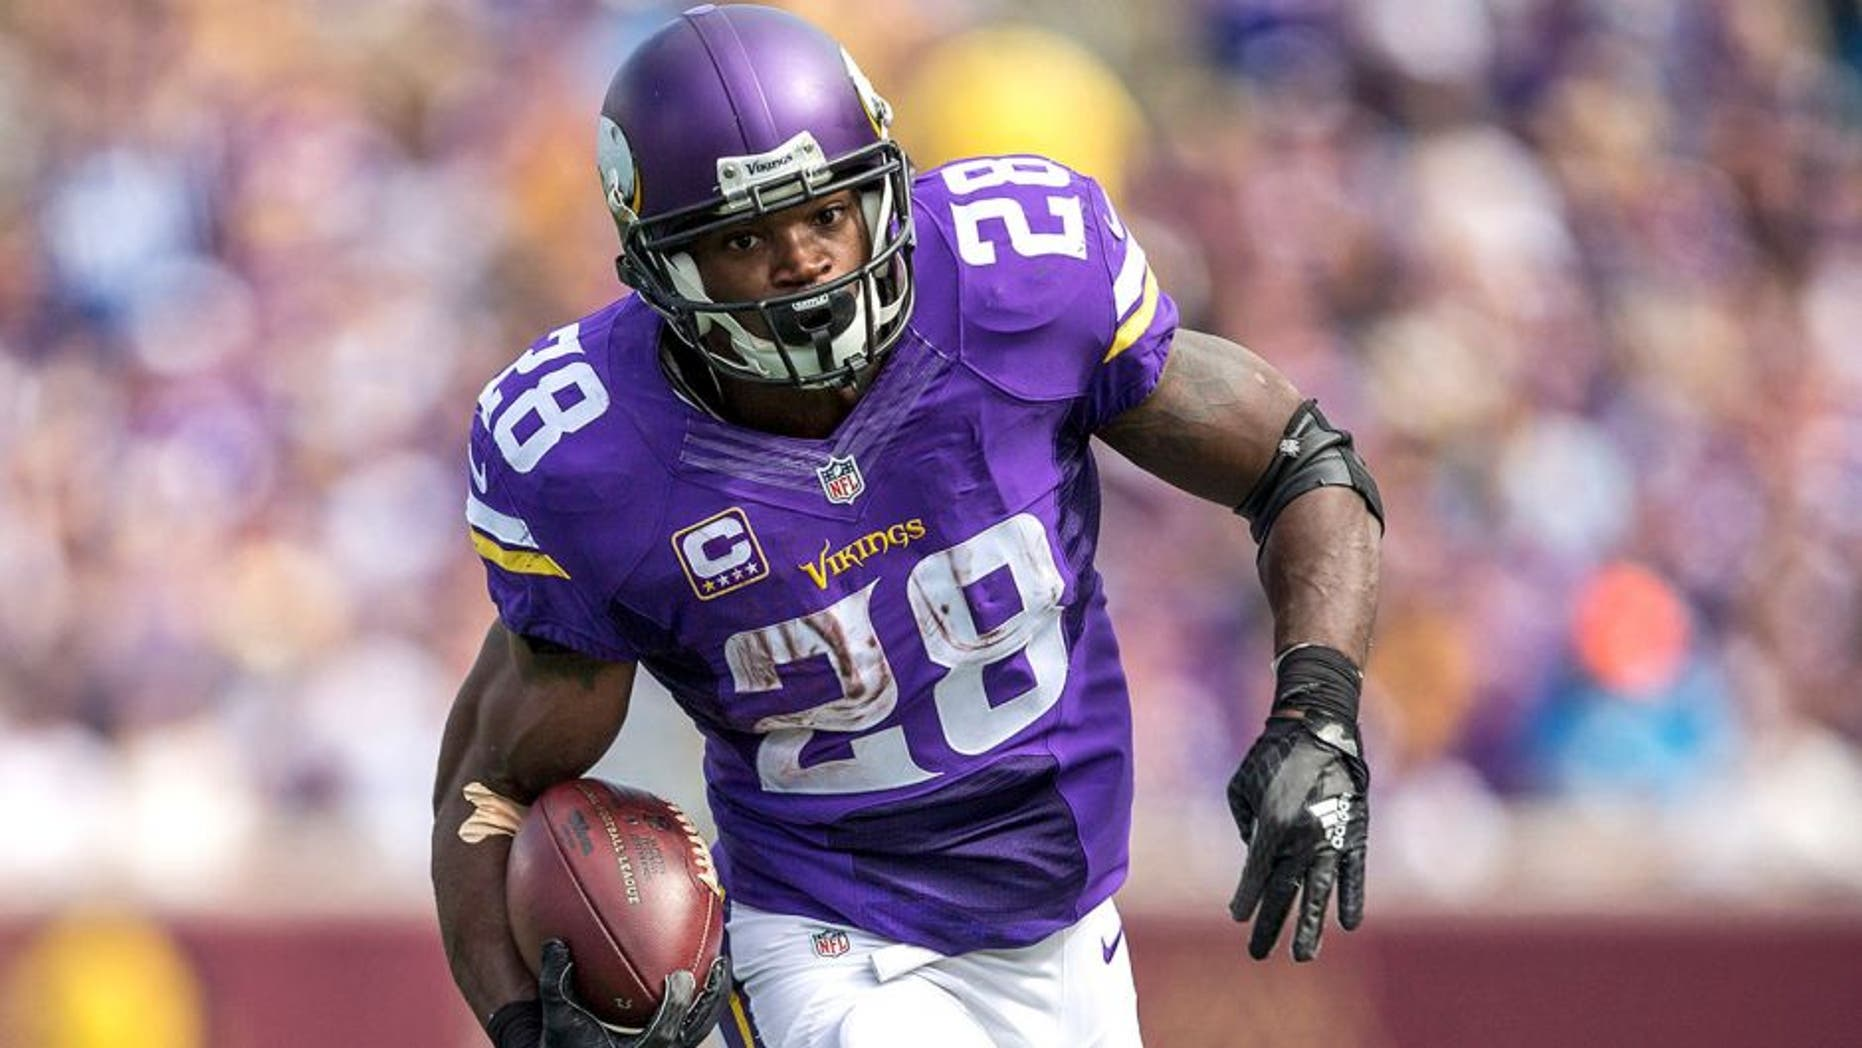 Sep 20, 2015; Minneapolis, MN, USA; Minnesota Vikings running back Adrian Peterson (28) rushes with the ball in the second half against the Detroit Lions at TCF Bank Stadium. The Vikings won 26-16. Mandatory Credit: Jesse Johnson-USA TODAY Sports